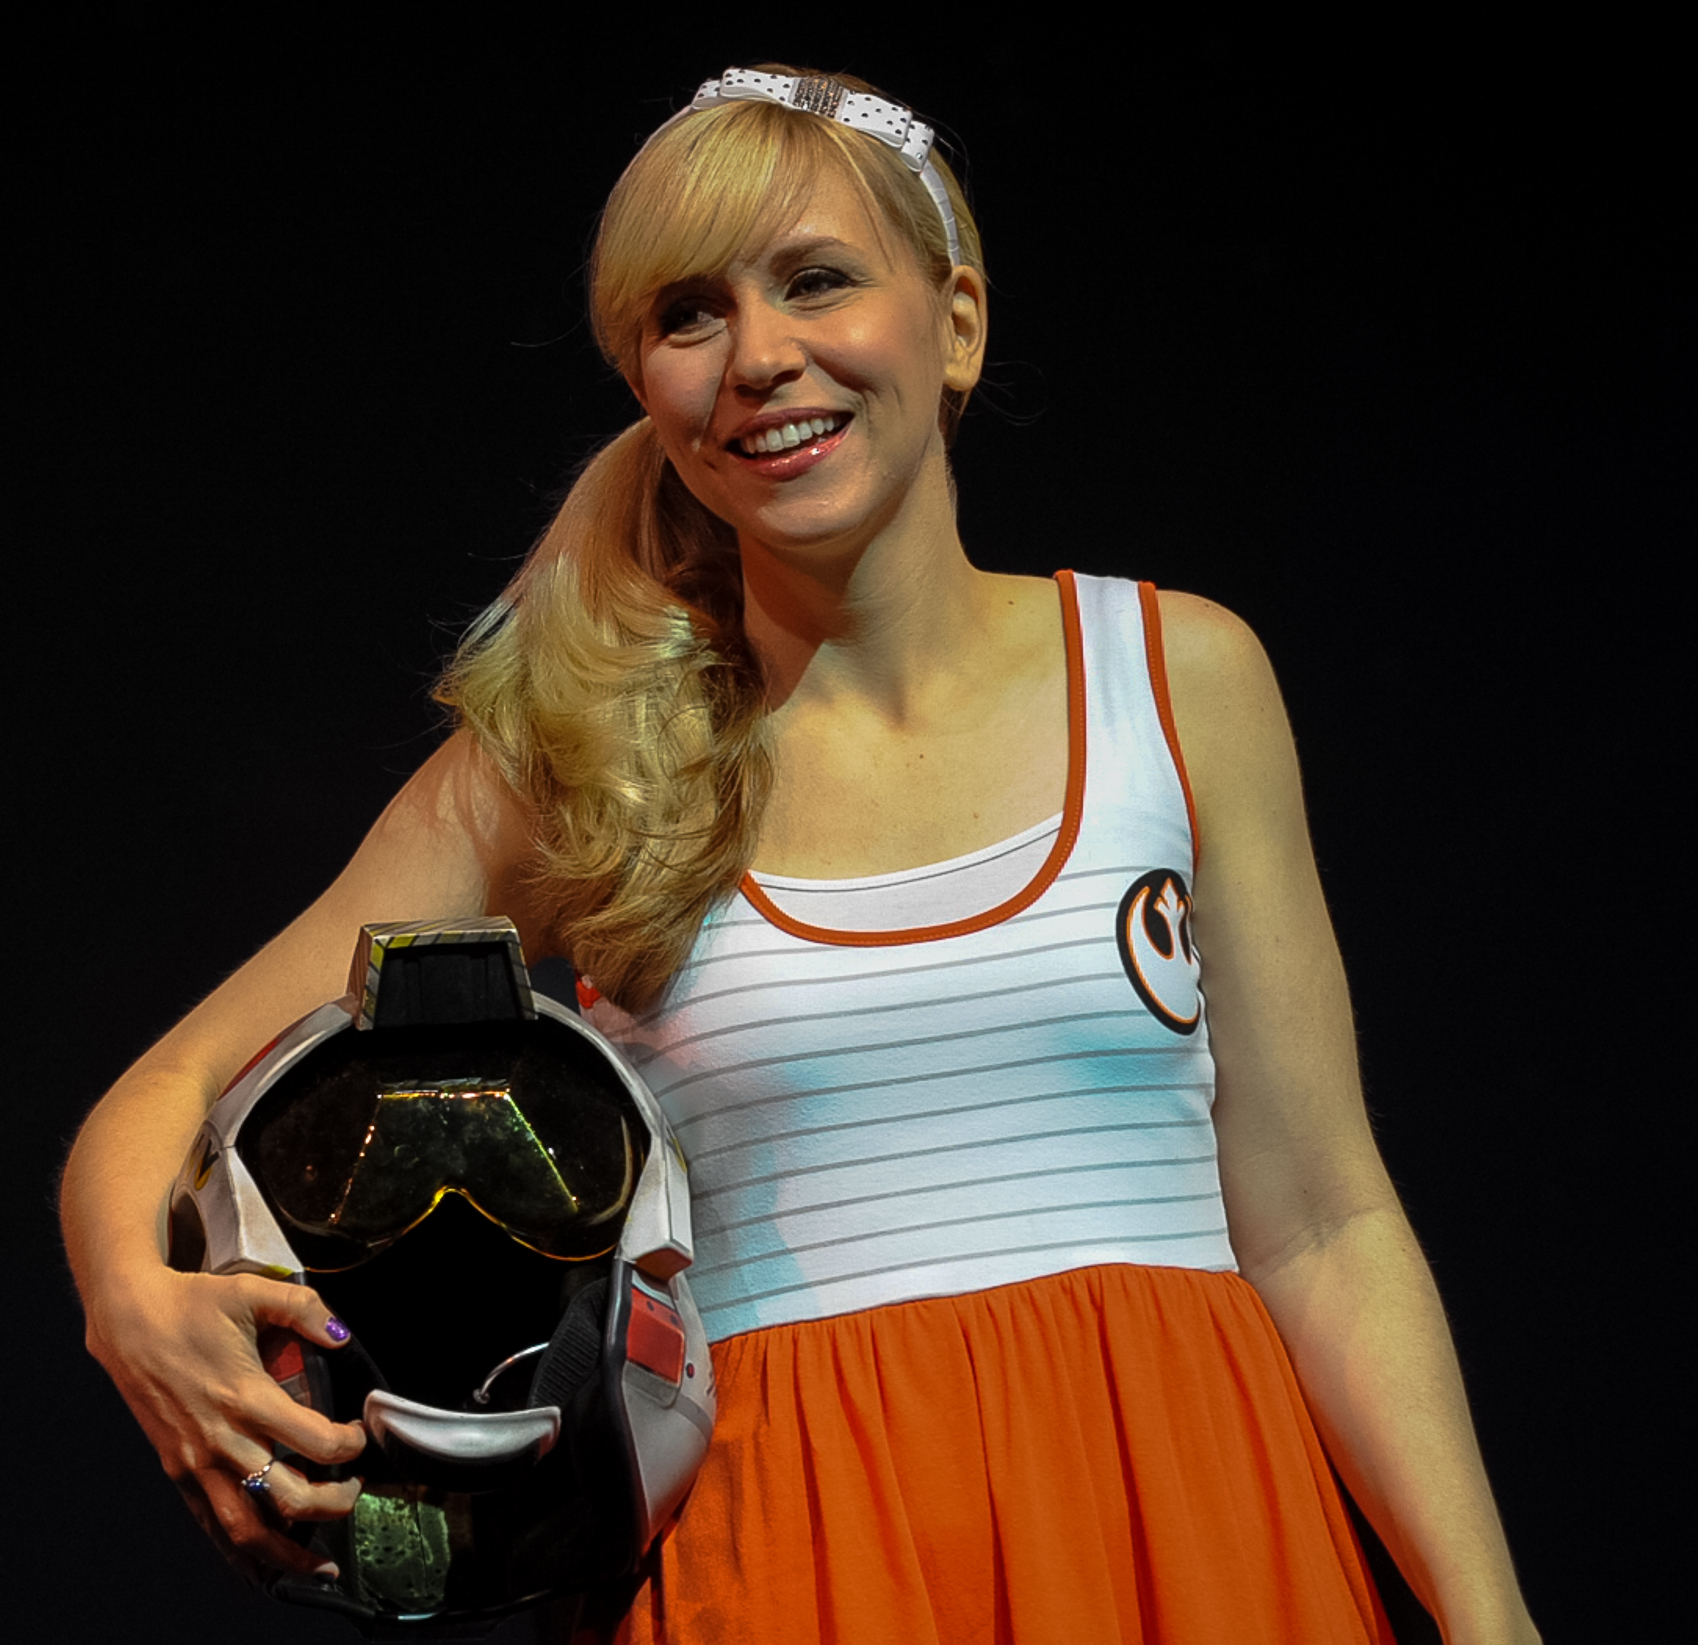 The 37-year old daughter of father (?) and mother(?) Ashley Eckstein in 2018 photo. Ashley Eckstein earned a  million dollar salary - leaving the net worth at 2 million in 2018